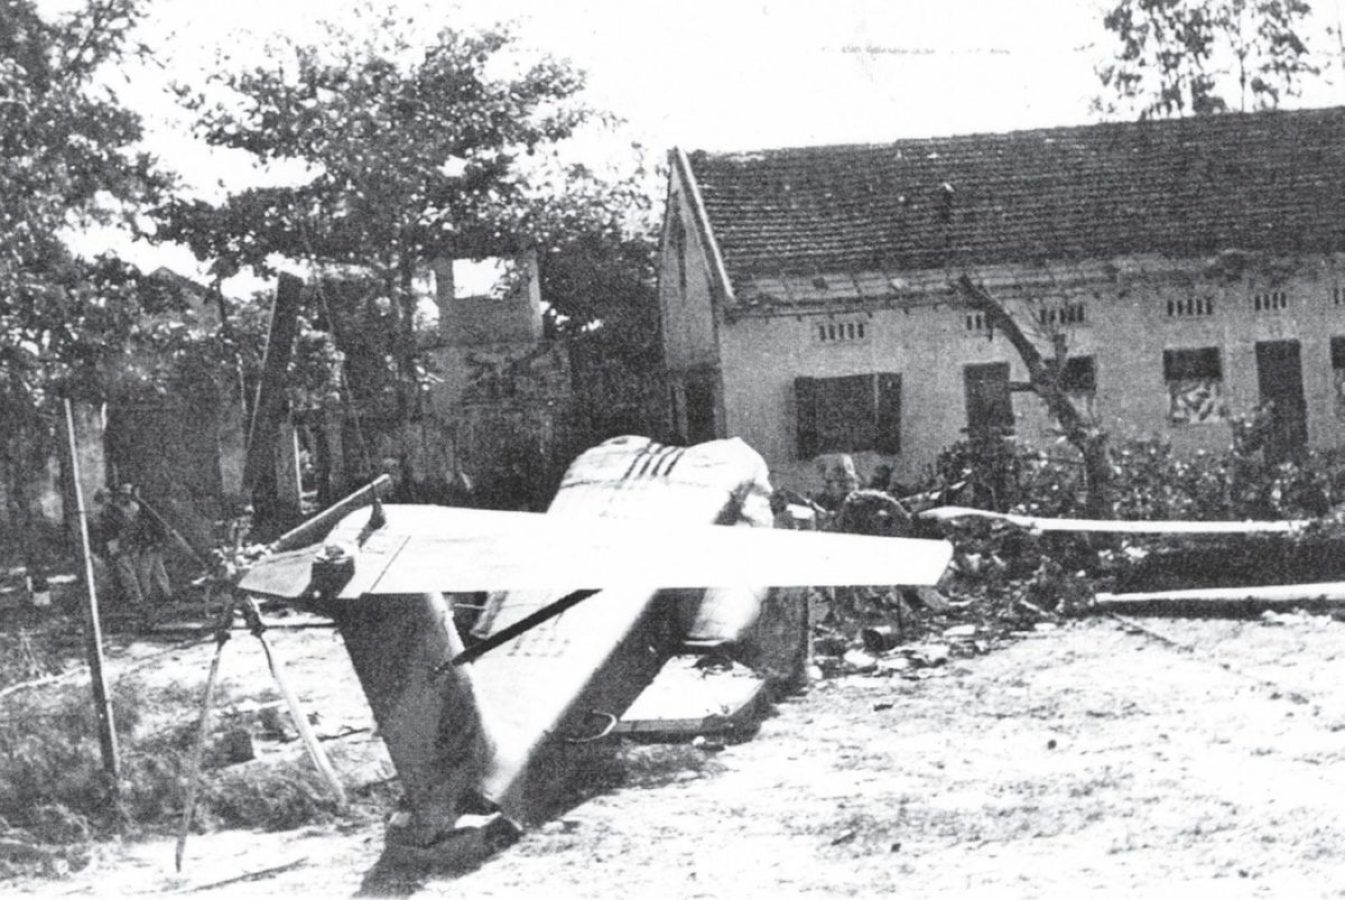 Banana 1 destroyed by Son Tay Raid Vietnam War Special Operations